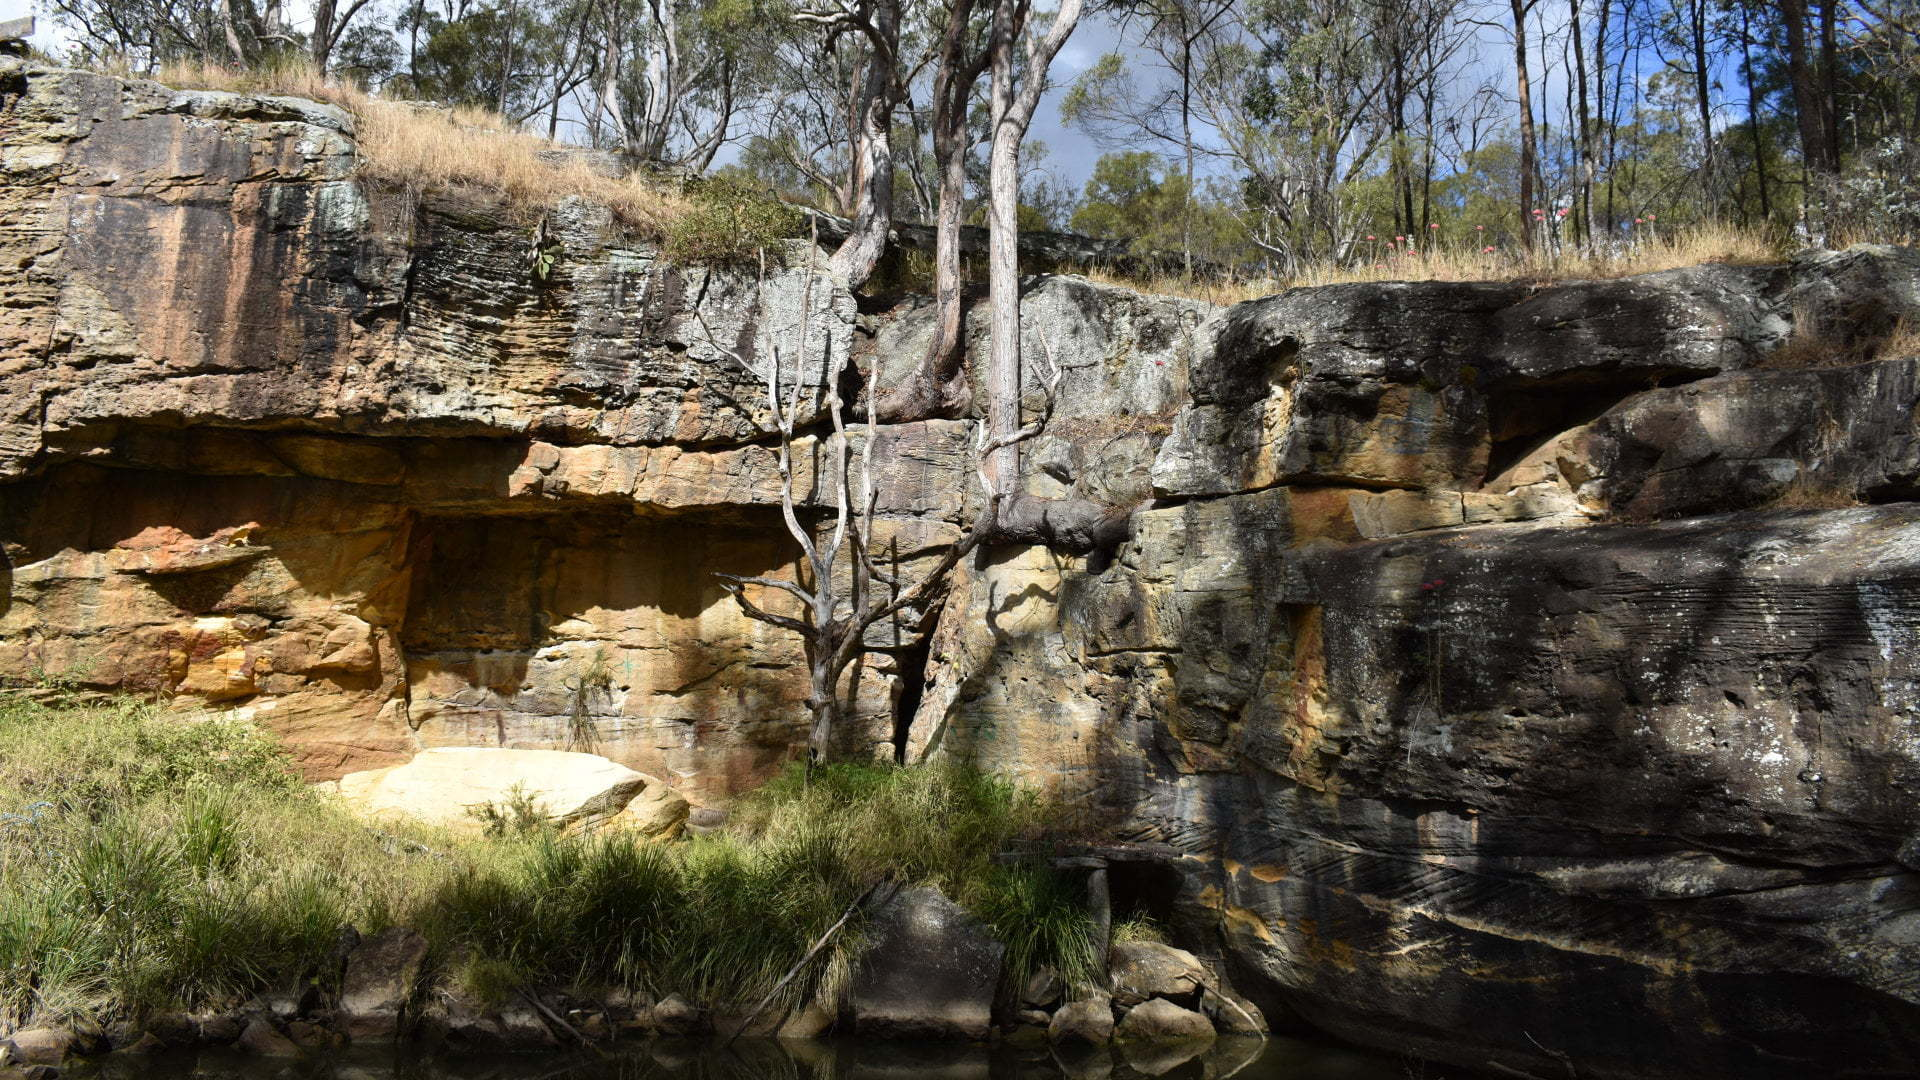 Rock walls at the Pump Hole on the trail walk in Crows Nest. The walk starts at Bullocky's Rest Park and follows Applegum Walk along Crows Nest Creek and Bald Hills Creek to Hartmann Park, then through the township of Crows Nest